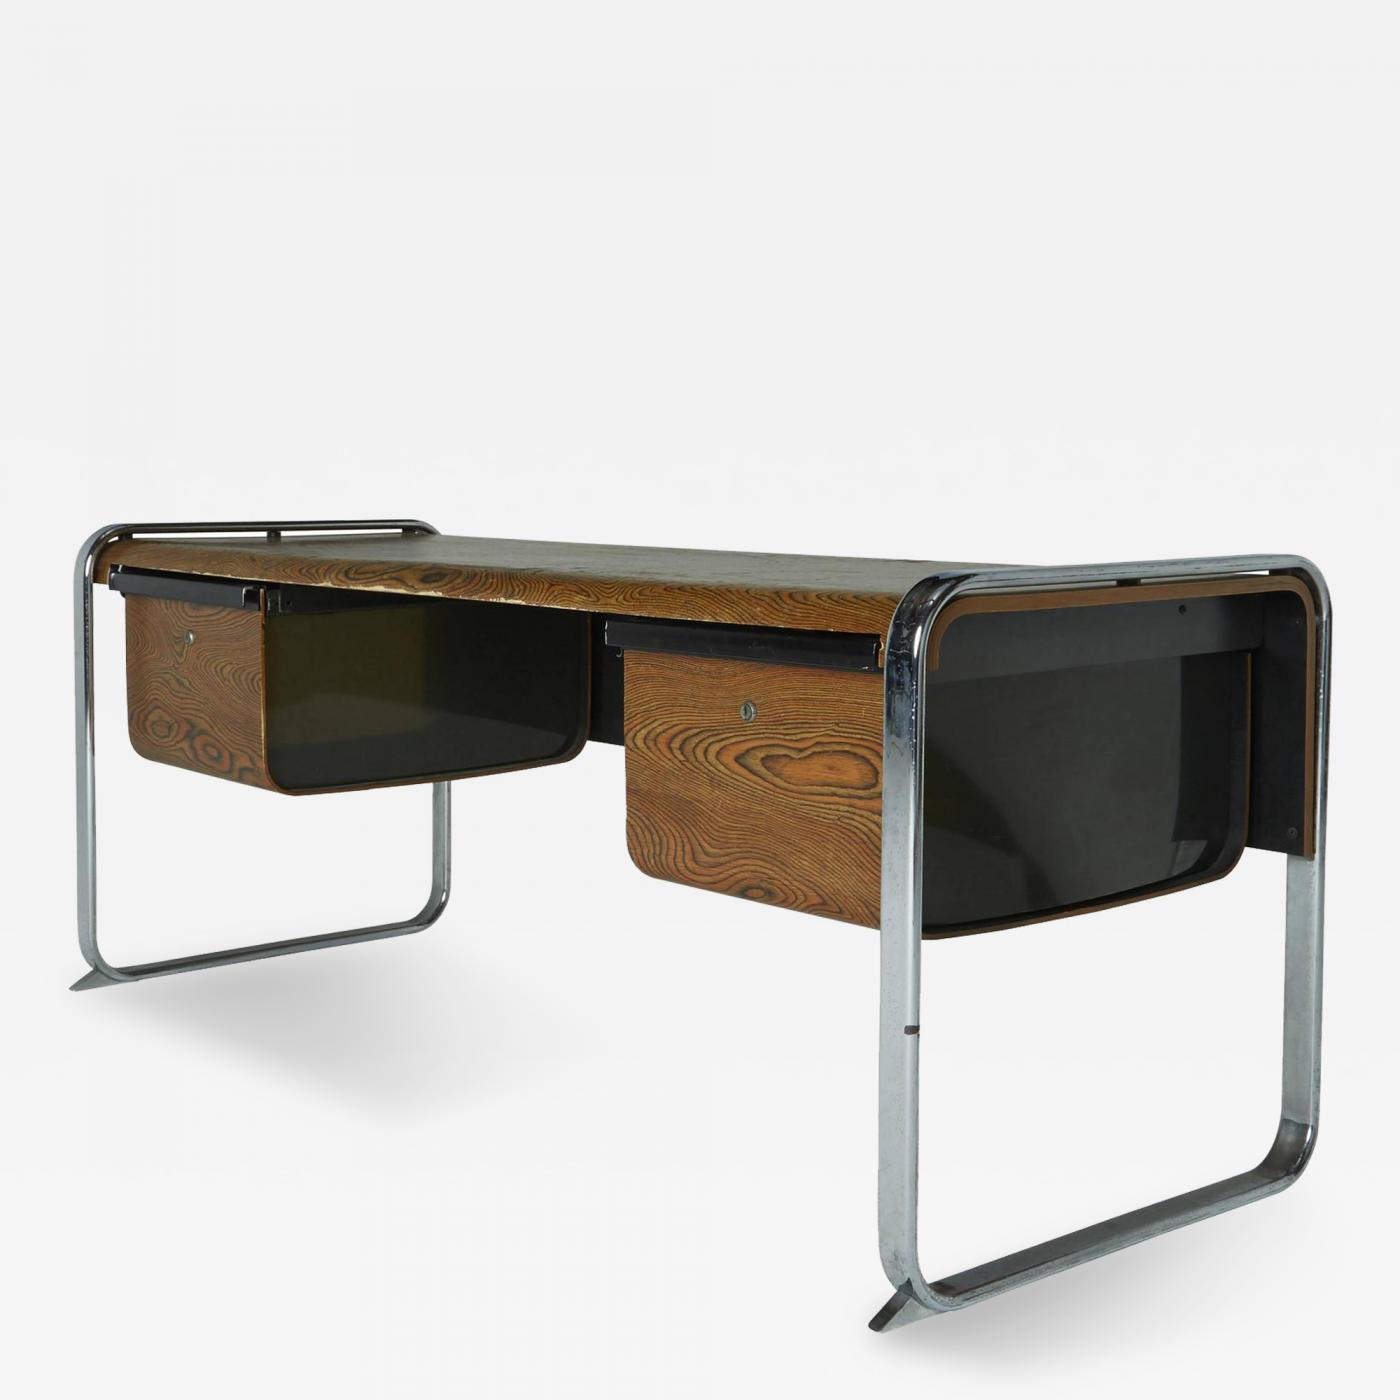 Peter Protzman Exotic Zebrawood Desk by Peter Protzman for